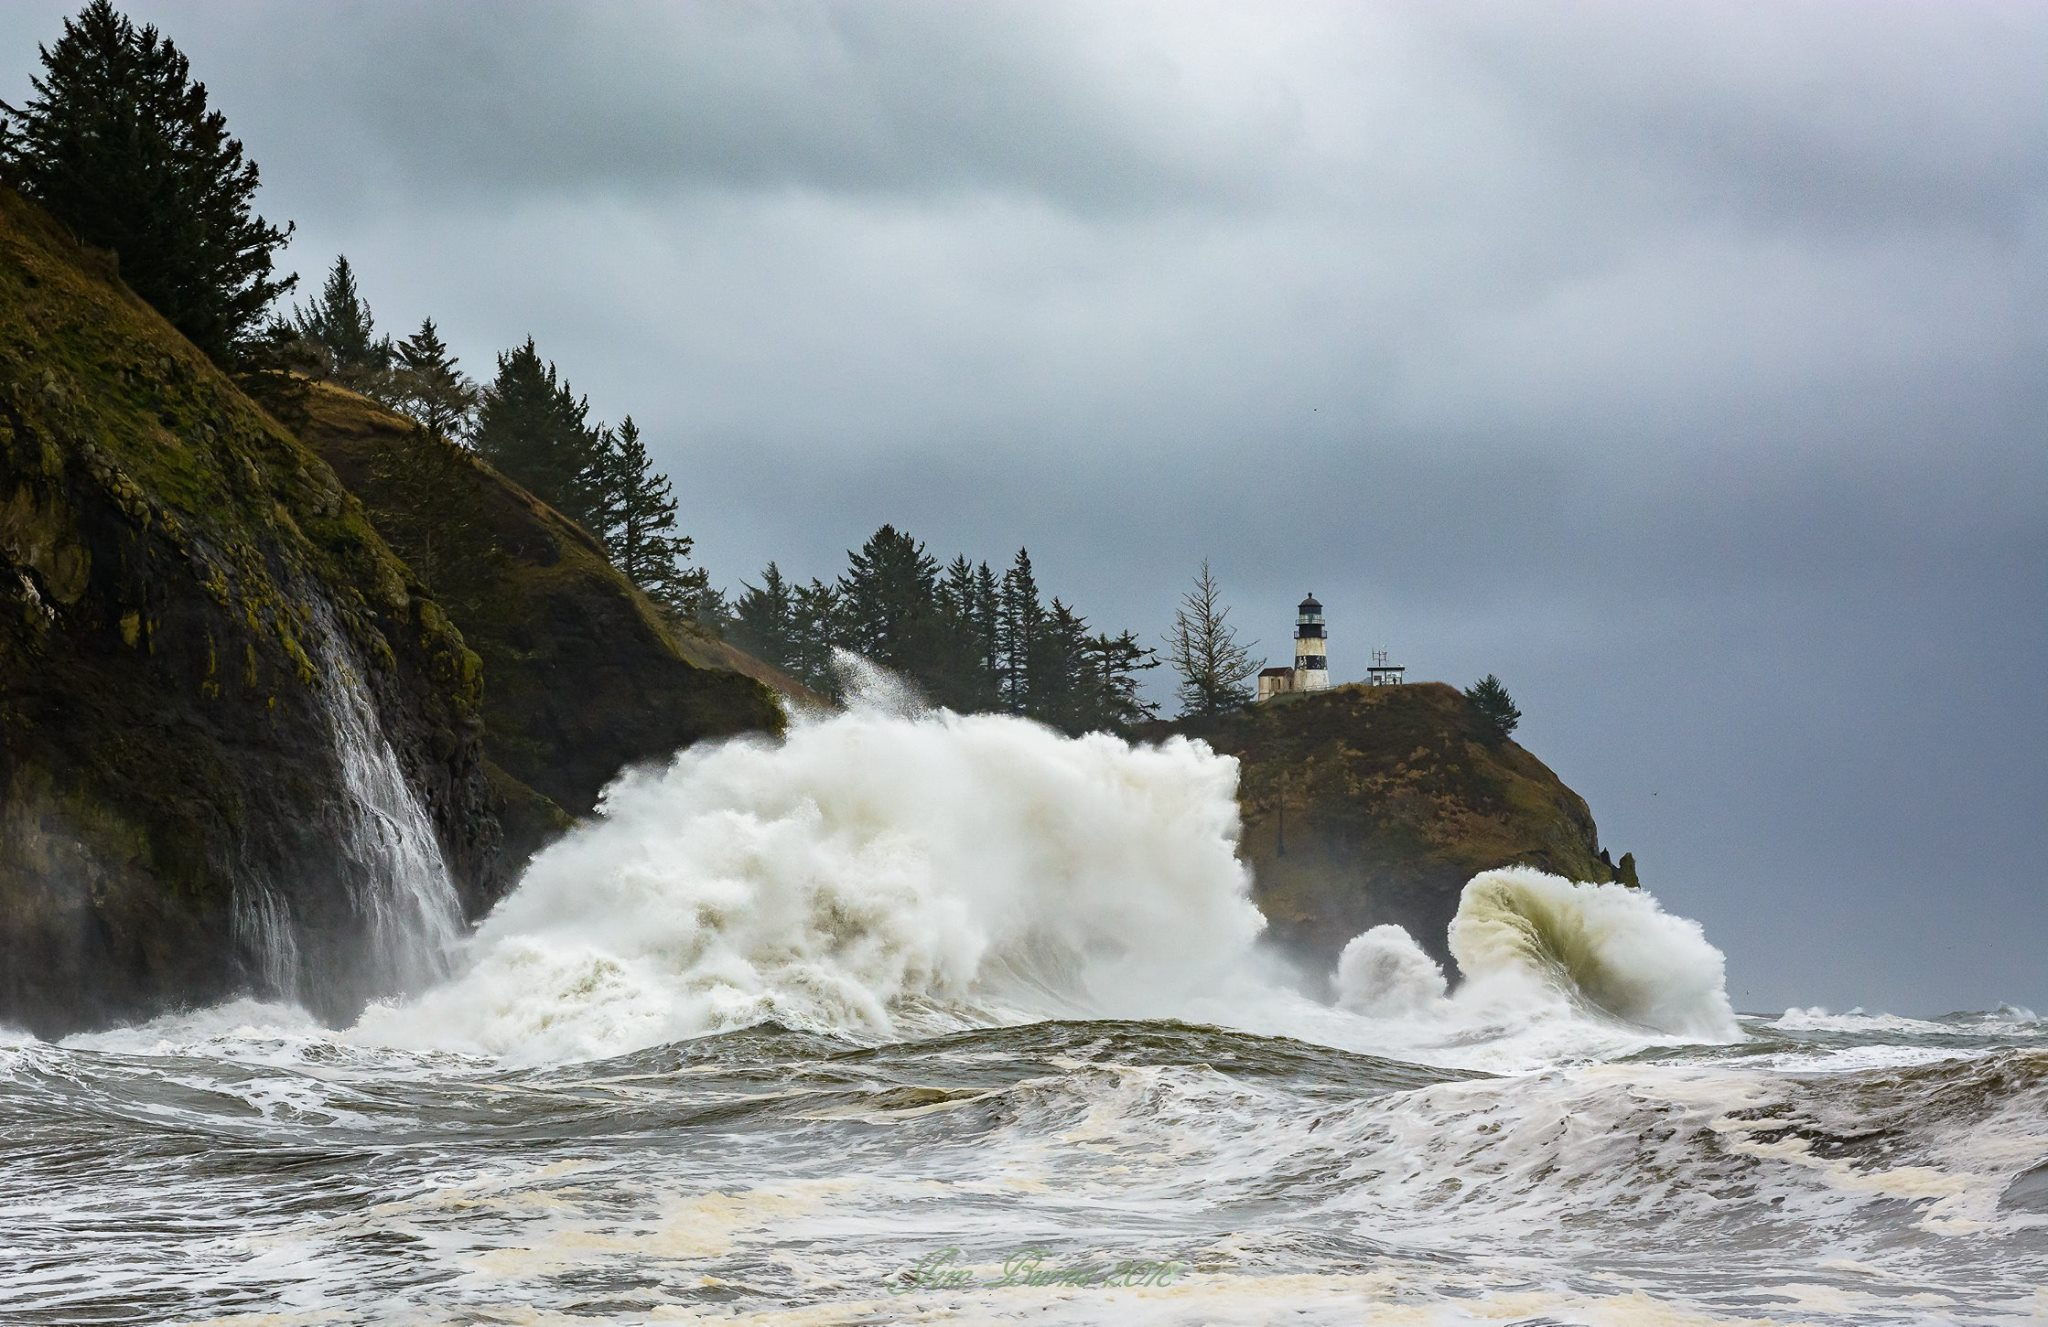 Huge waves crash into Cape Disappointment on Jan. 18, 2018 (Photo: Jim Burns)